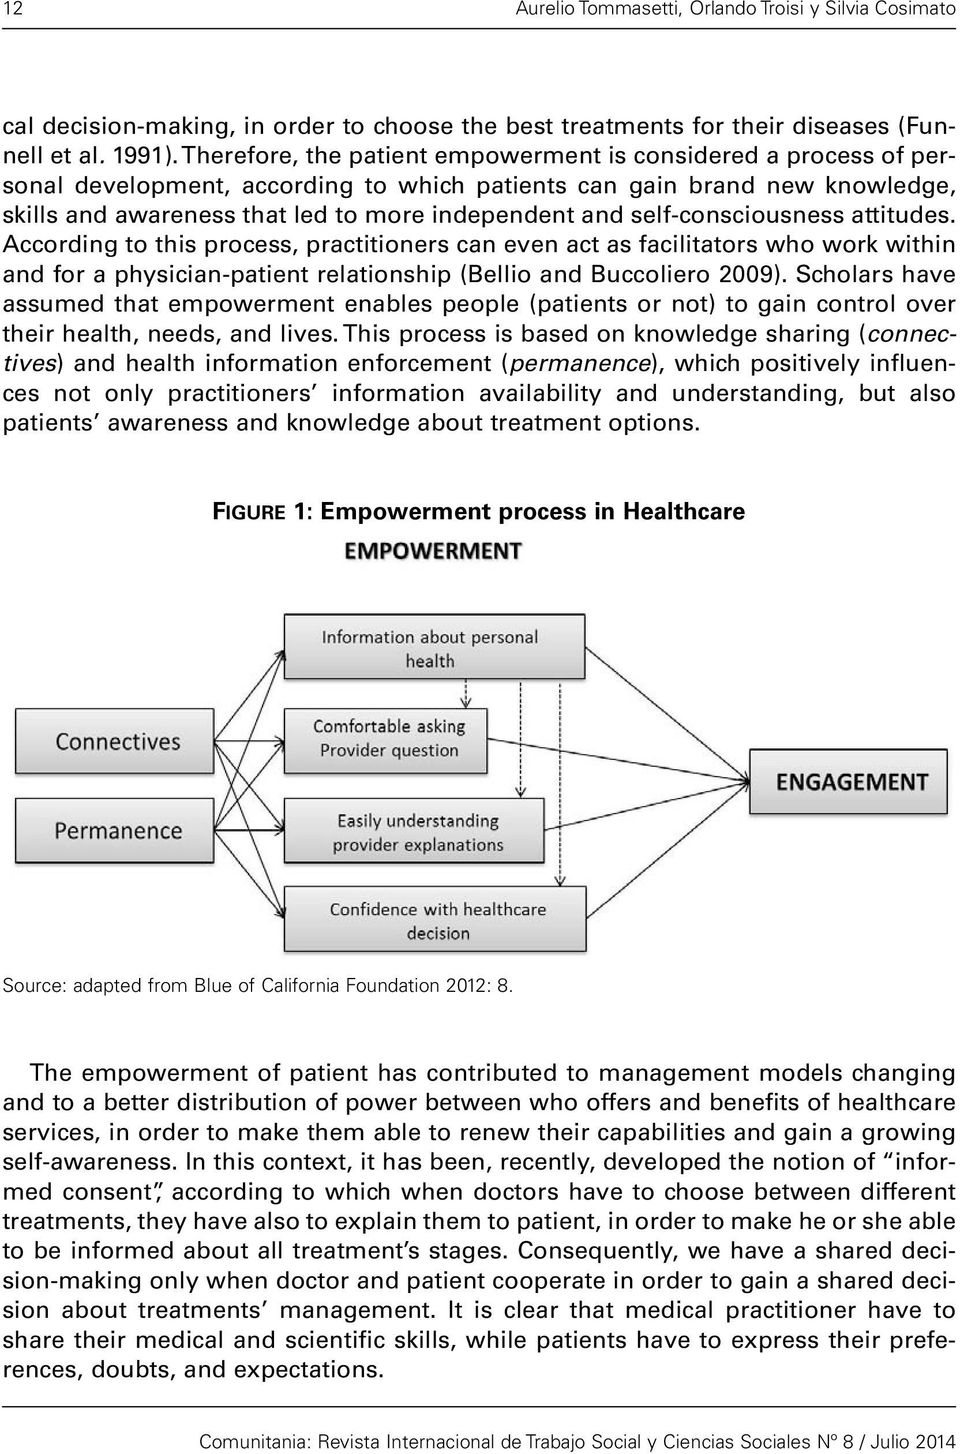 self-consciousness attitudes. According to this process, practitioners can even act as facilitators who work within and for a physician-patient relationship (Bellio and Buccoliero 2009).